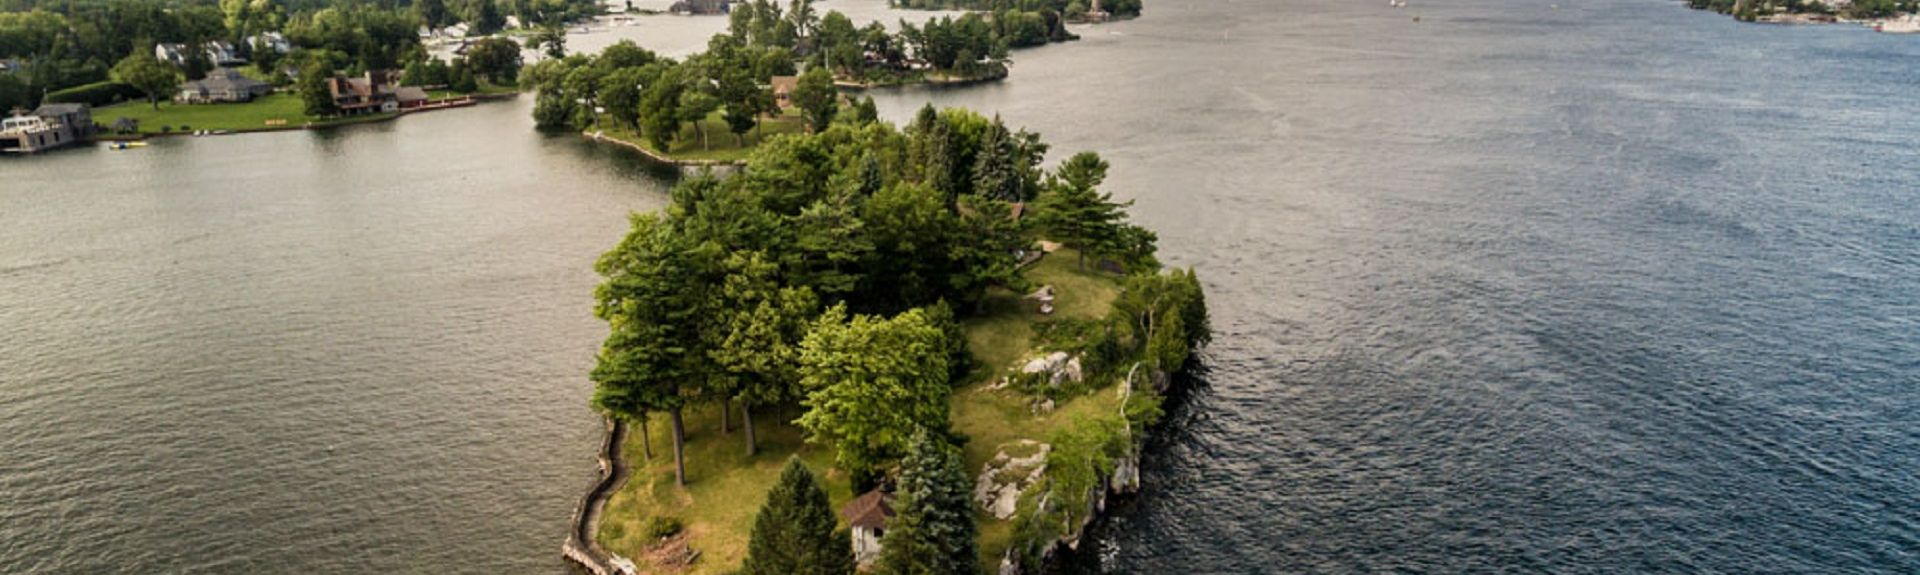 Thousand Islands Museum, Clayton, New York, United States of America